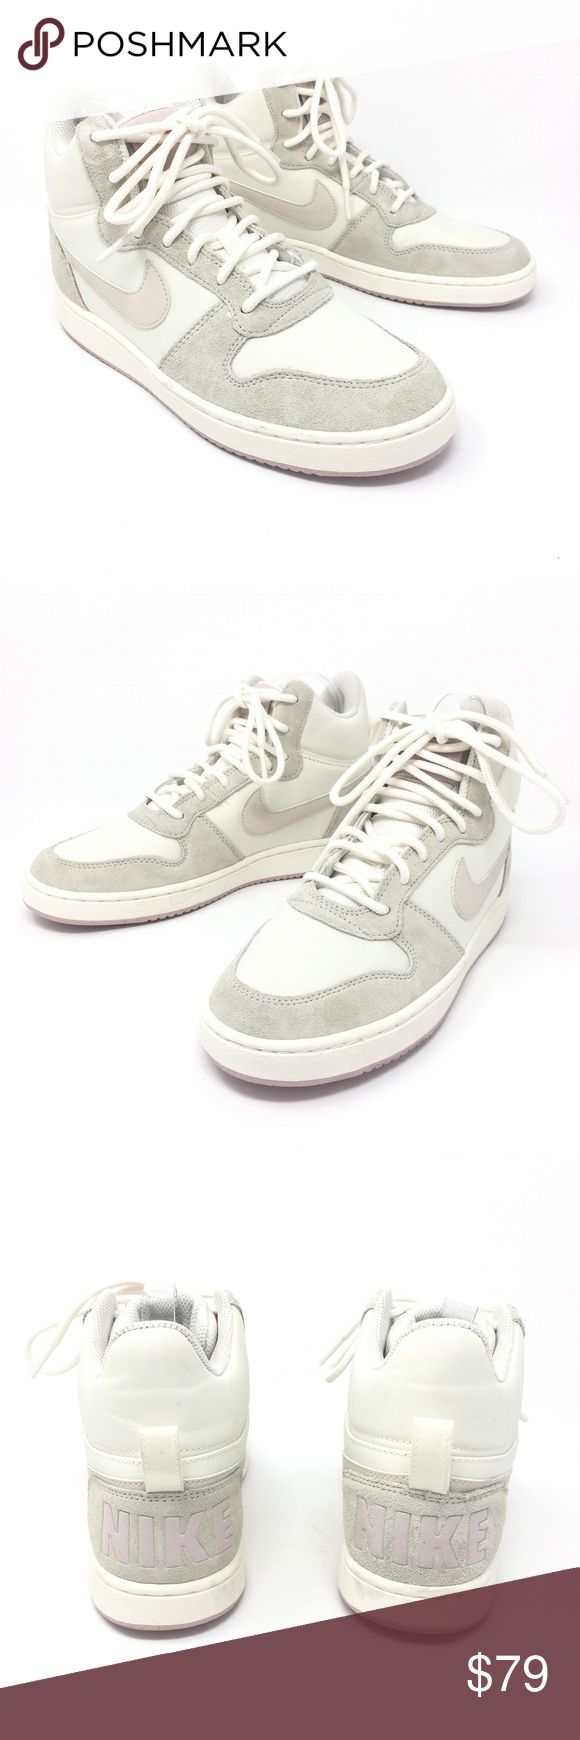 Nike Court Borough Mid Sneakers white Gray Sz 8 Nike Court Borough Mid Sneakers Premium Trainers Ladies Sz 8 Gray White NEW  Size: 8 Women's Color: Gray White Beige Style Name/Number: Court Borough Mid  Brand New without original box. Soles have slight marks from try-ons at store. Nike Shoes Sneakers